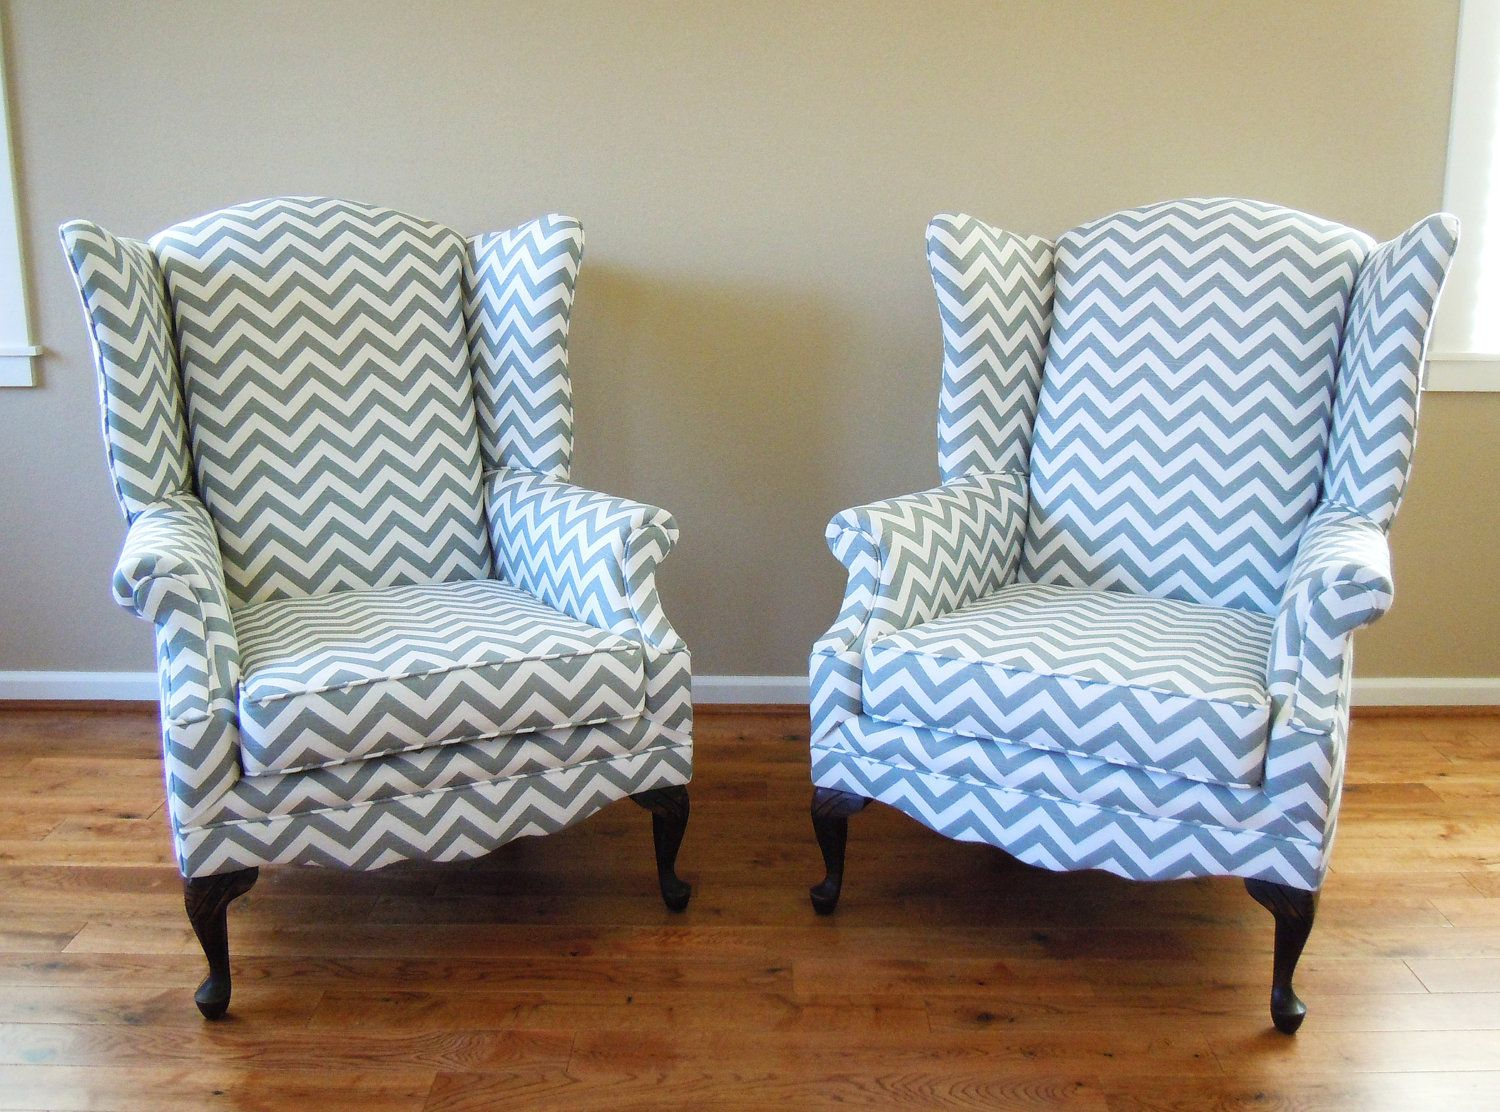 Chevron wing chairs - I Am Going To Reupholstered Some Wing Back Chairs For The Keeping Room Living Room